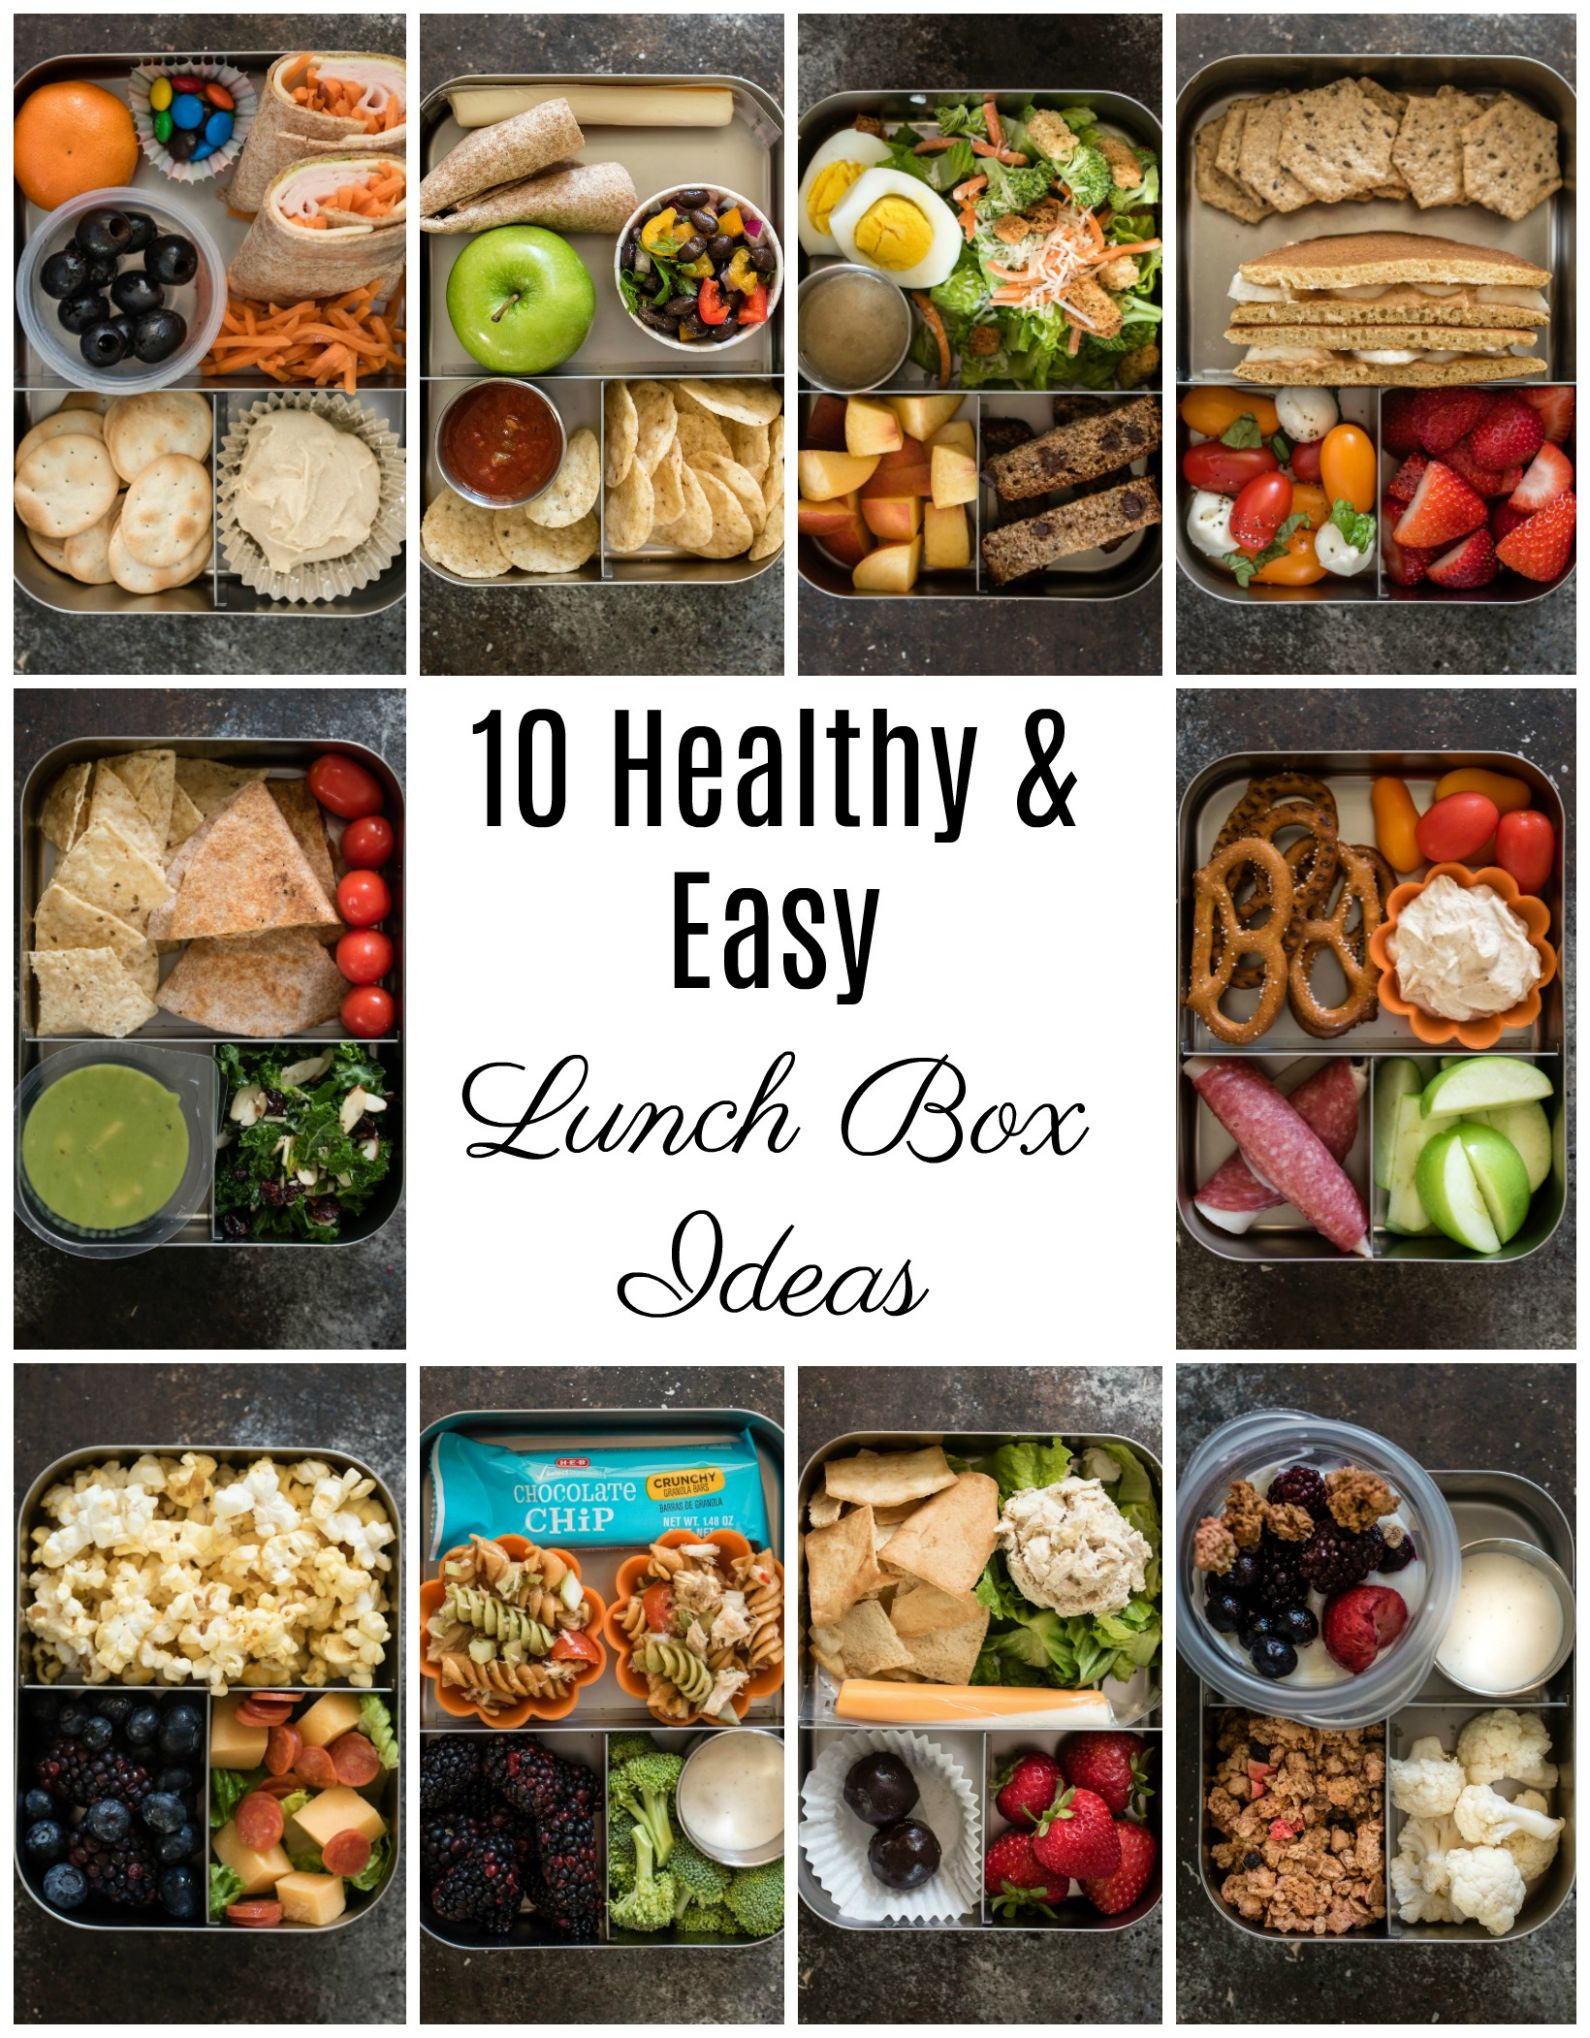 Pancake Sandwich and Healthy LunchBoxes - Sandwich Recipes Lunch Box